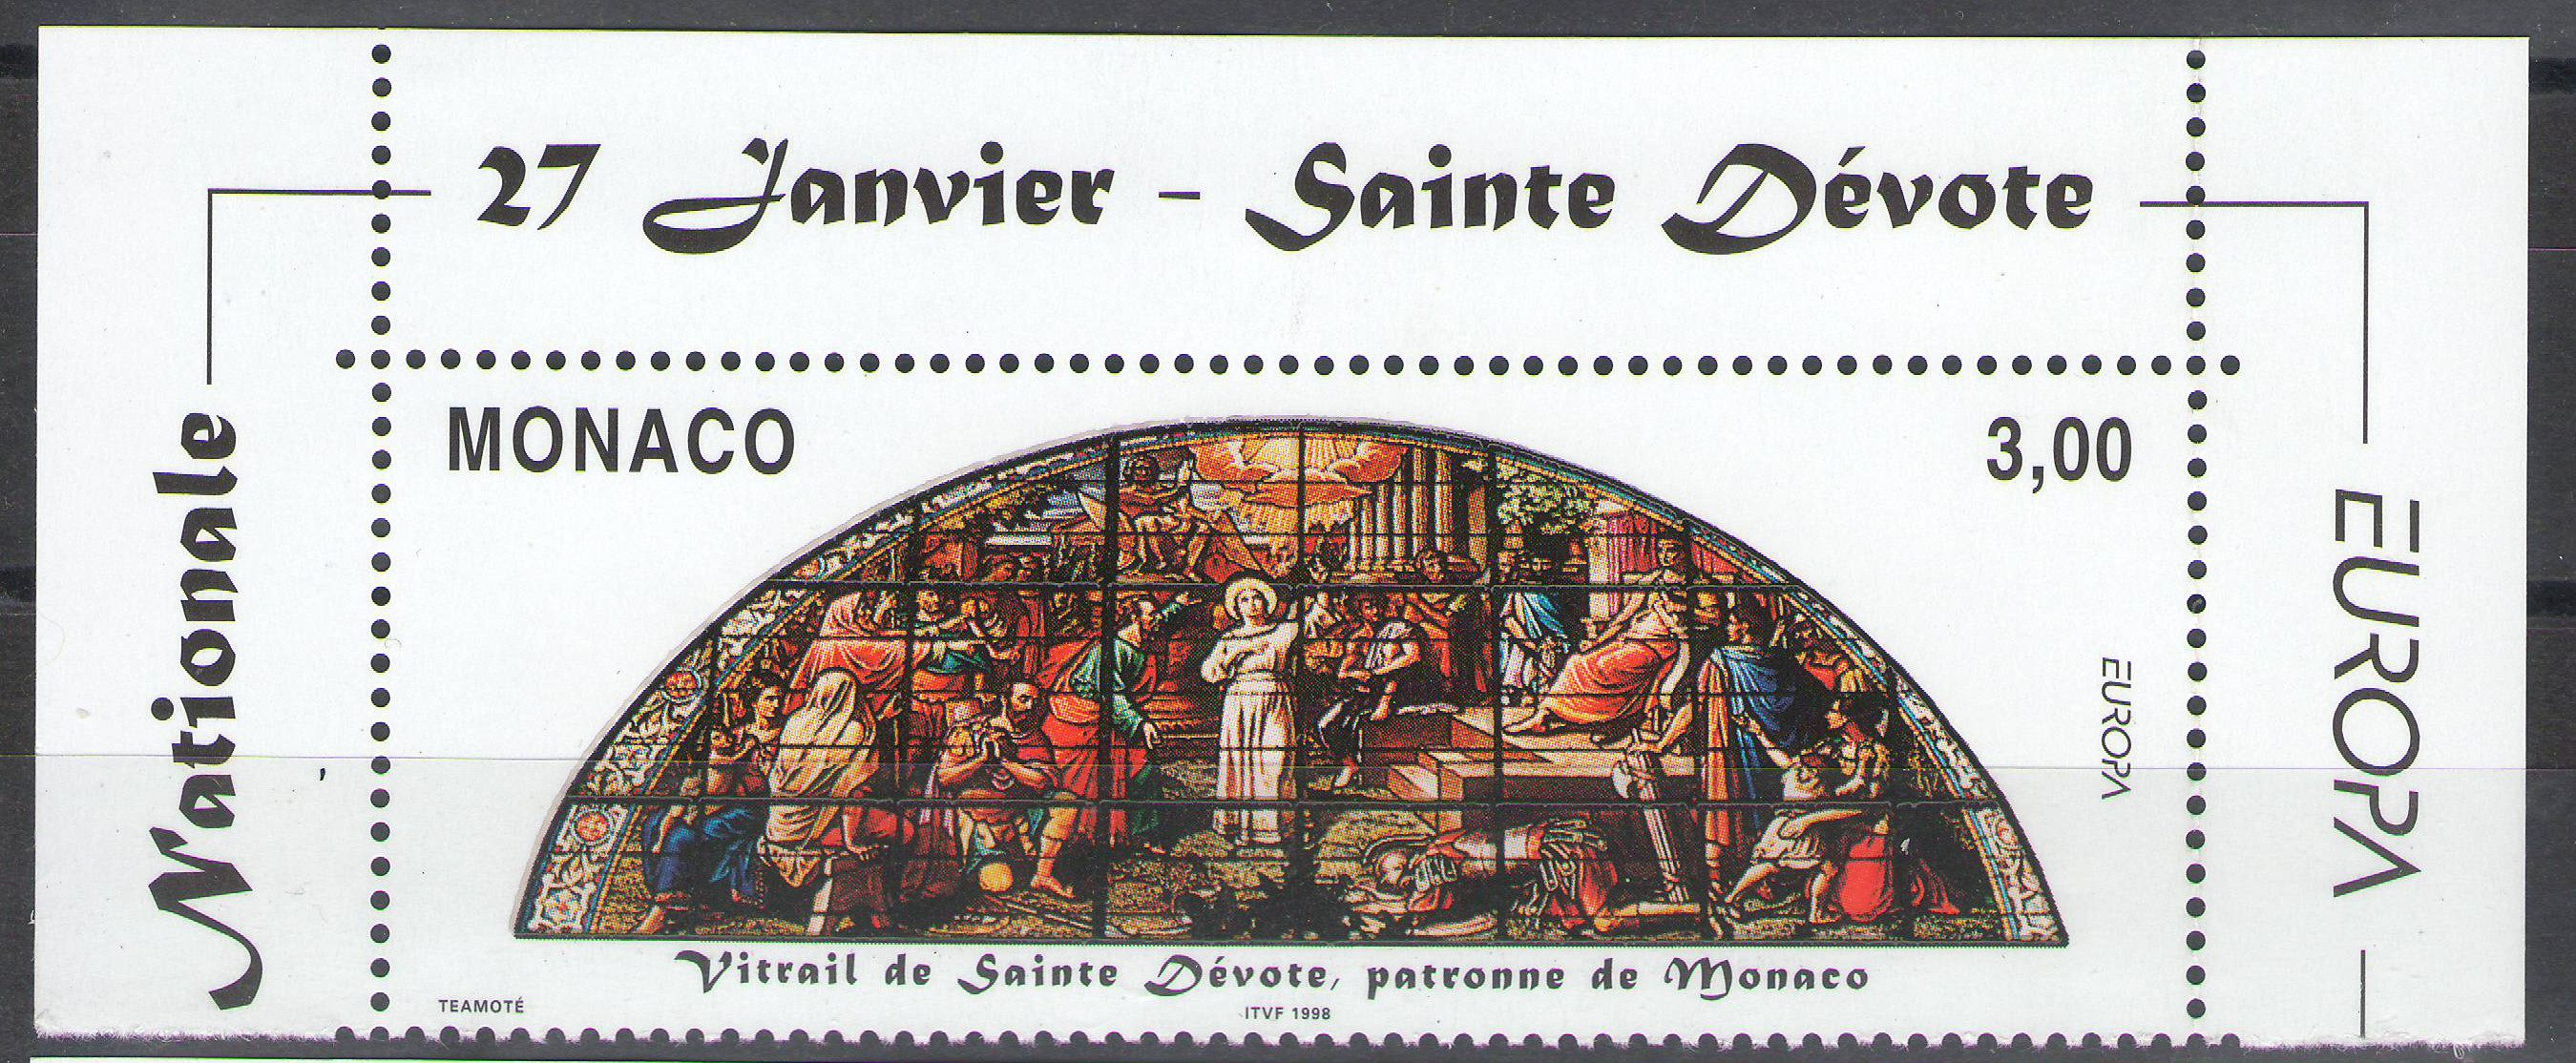 Monaco - 1998 - Saint Devote Stained Glass Window - corner MNH** - cv ?1.50